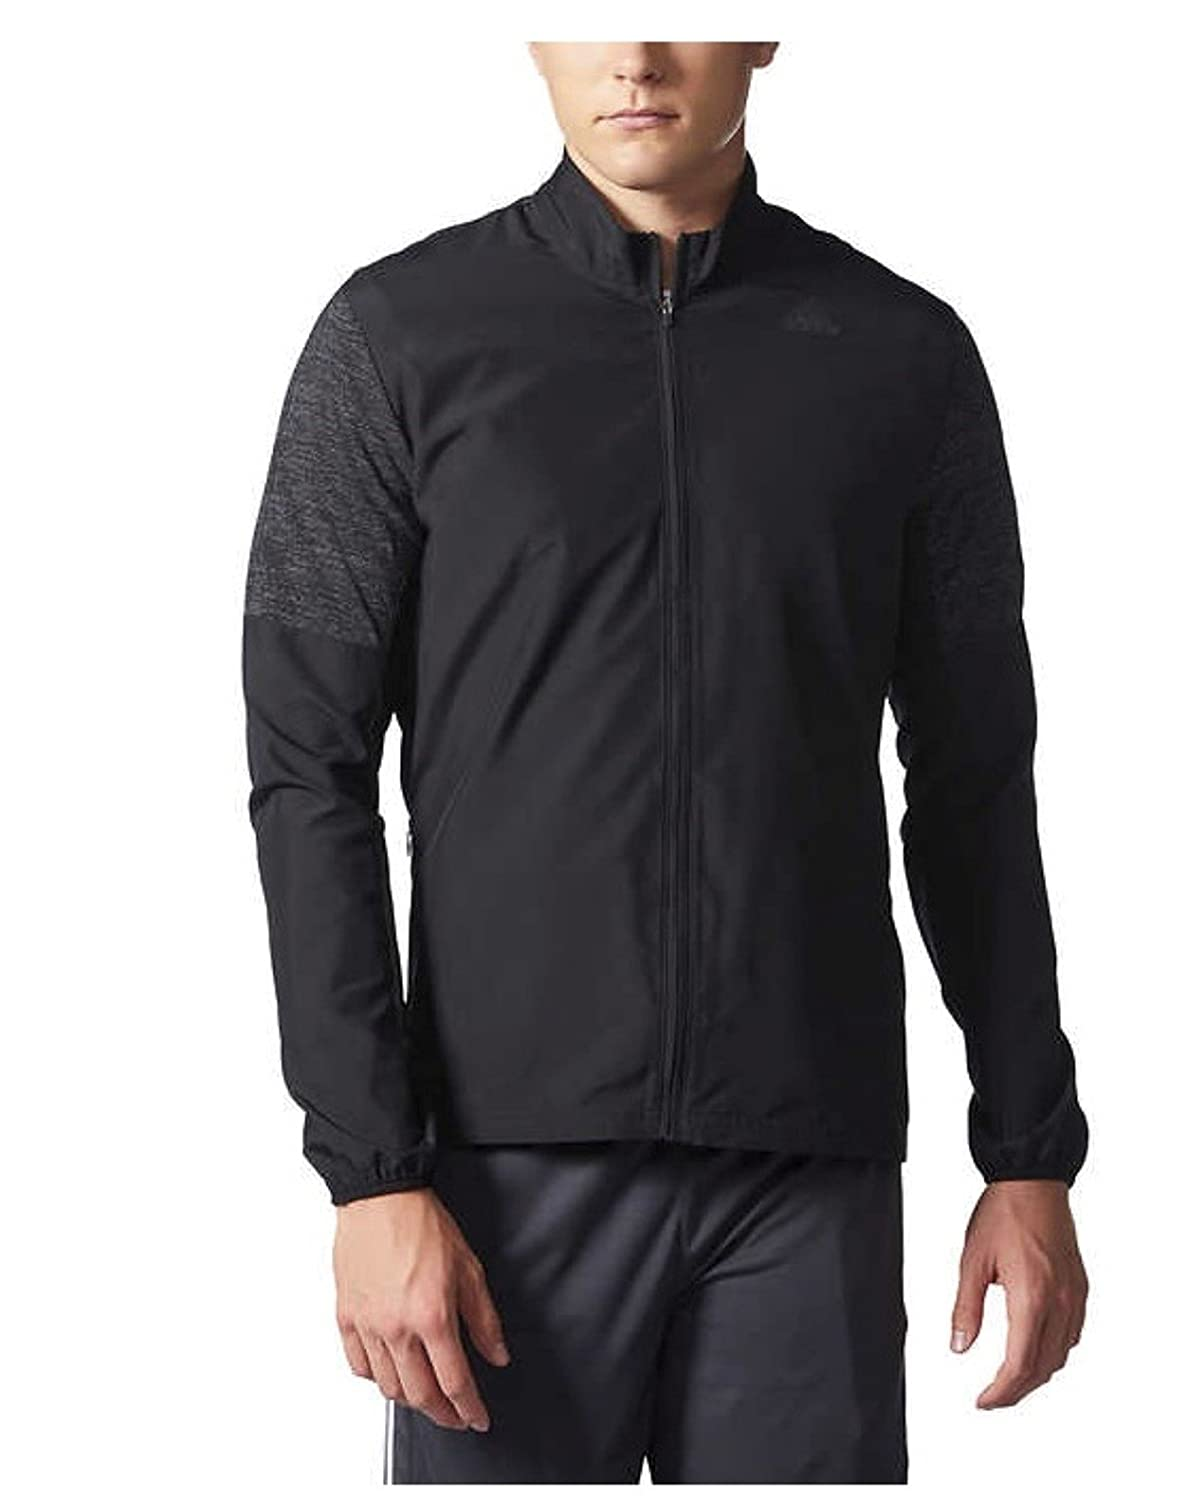 016407051535 Enjoy this lightweight Adidas track jacket for men! Perfect for running